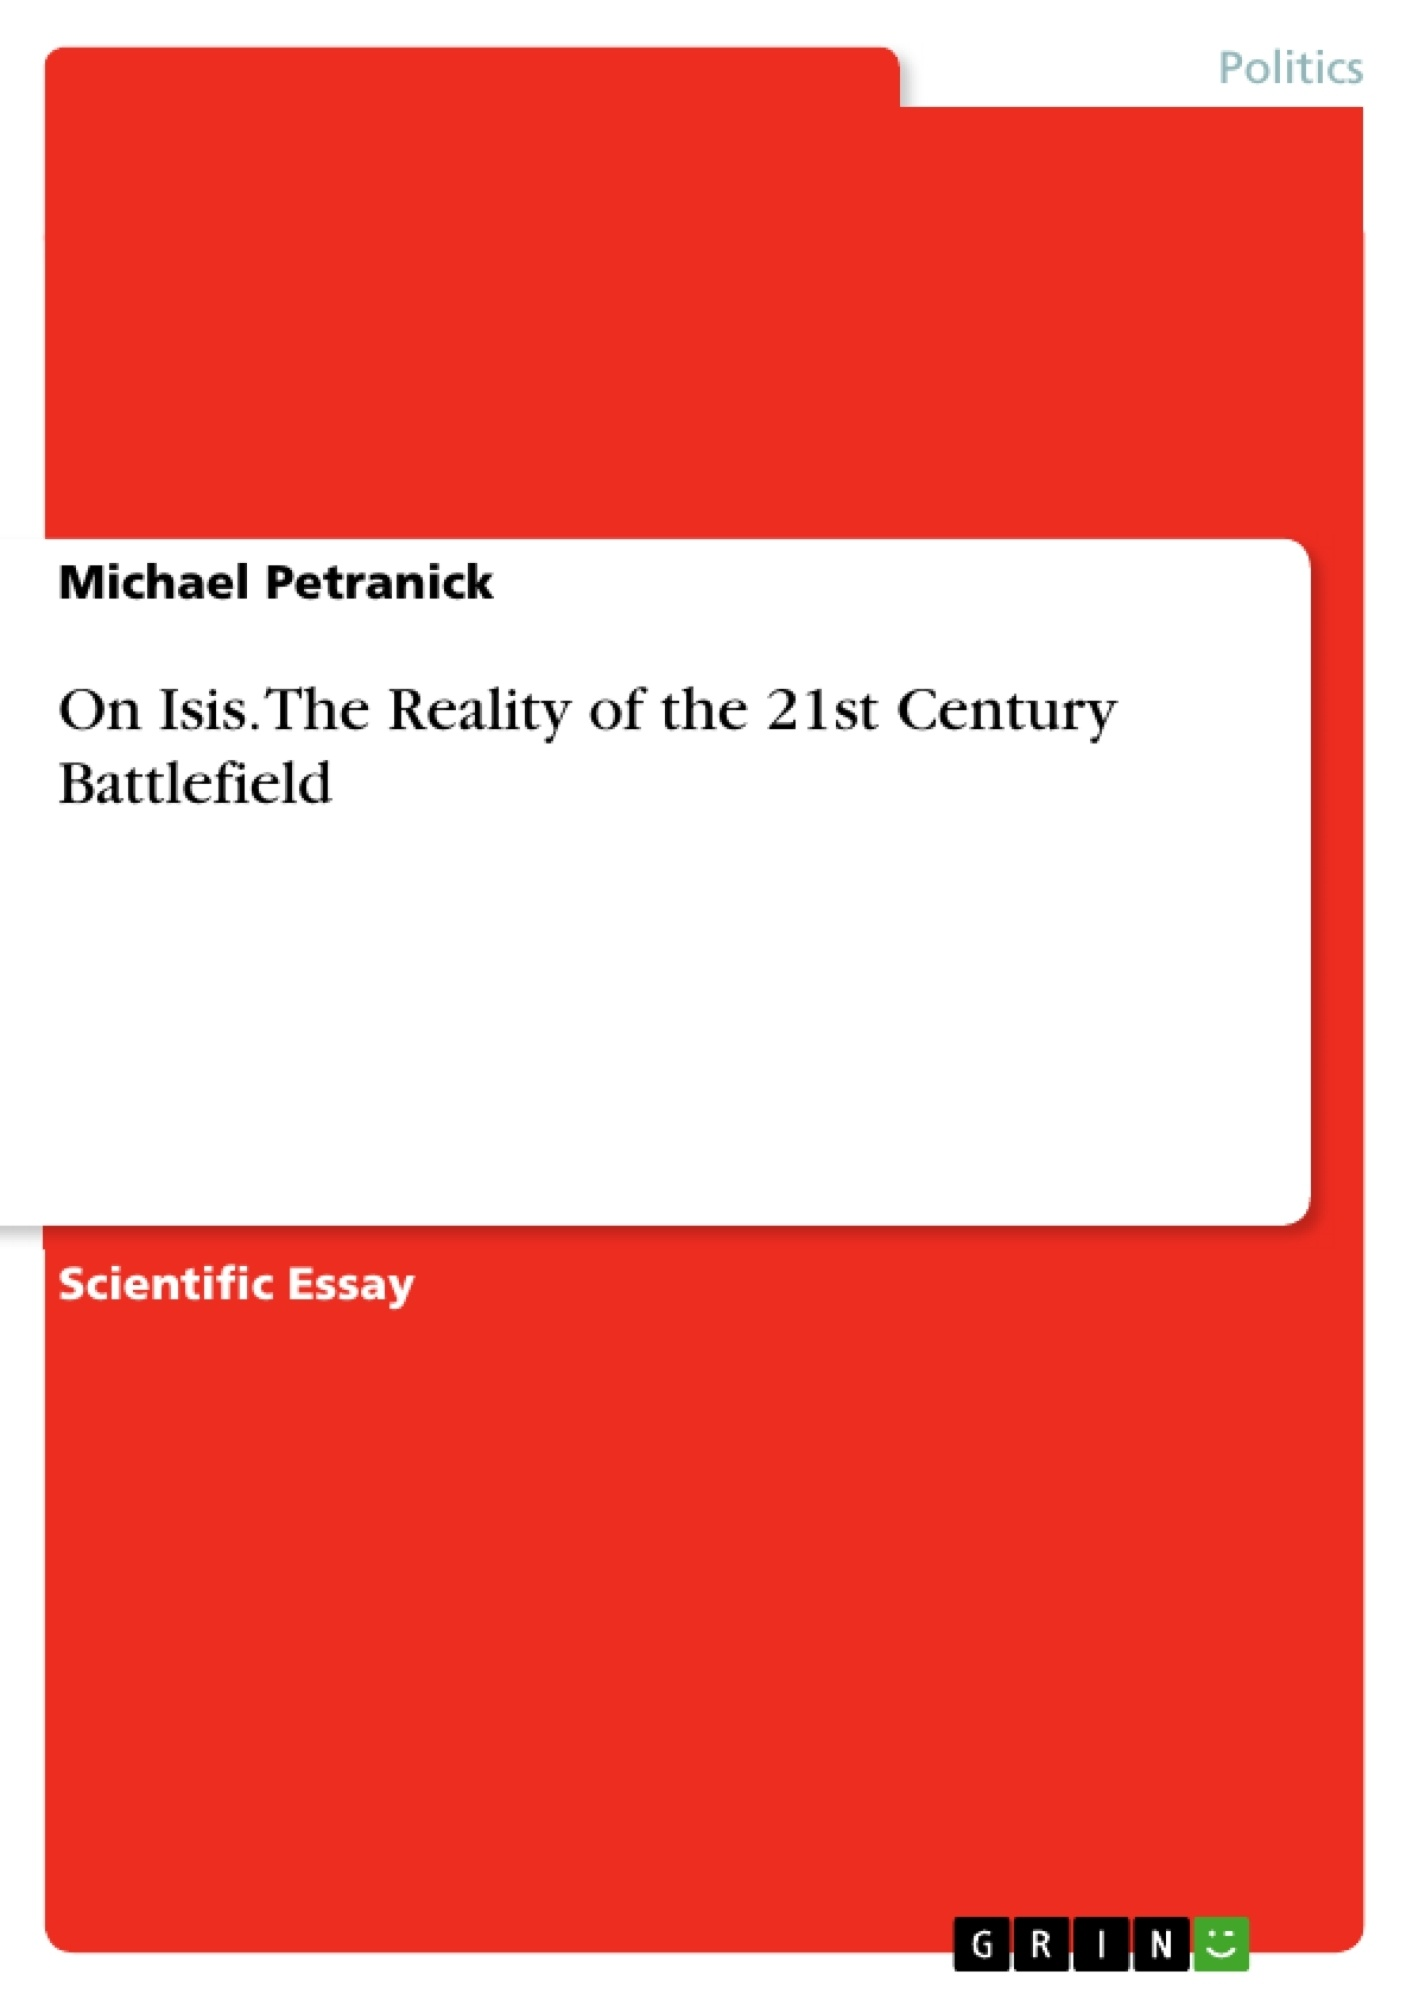 Title: On Isis. The Reality of the 21st Century Battlefield